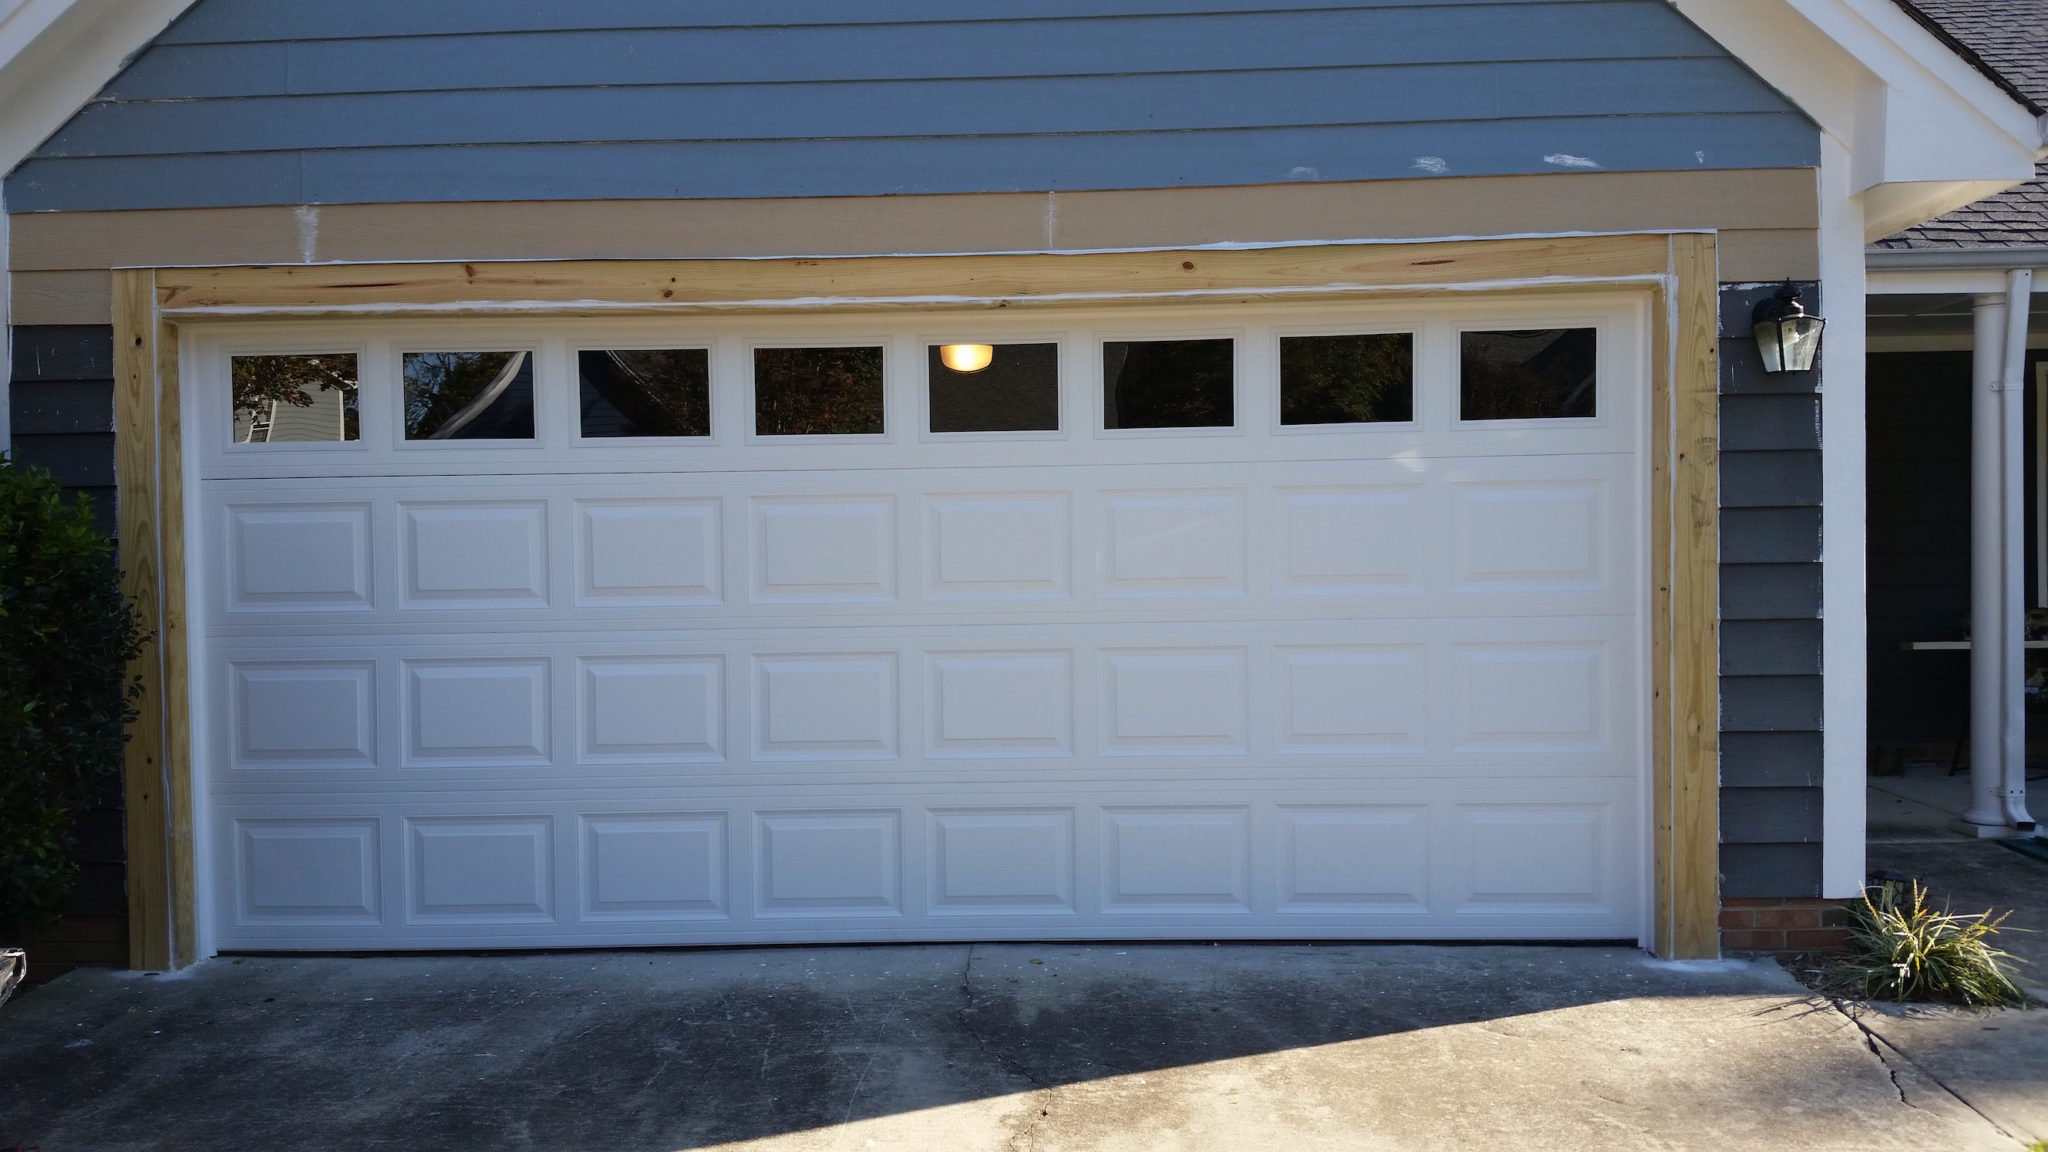 South charlotte residential garage door framing repair for Garage framing instructions